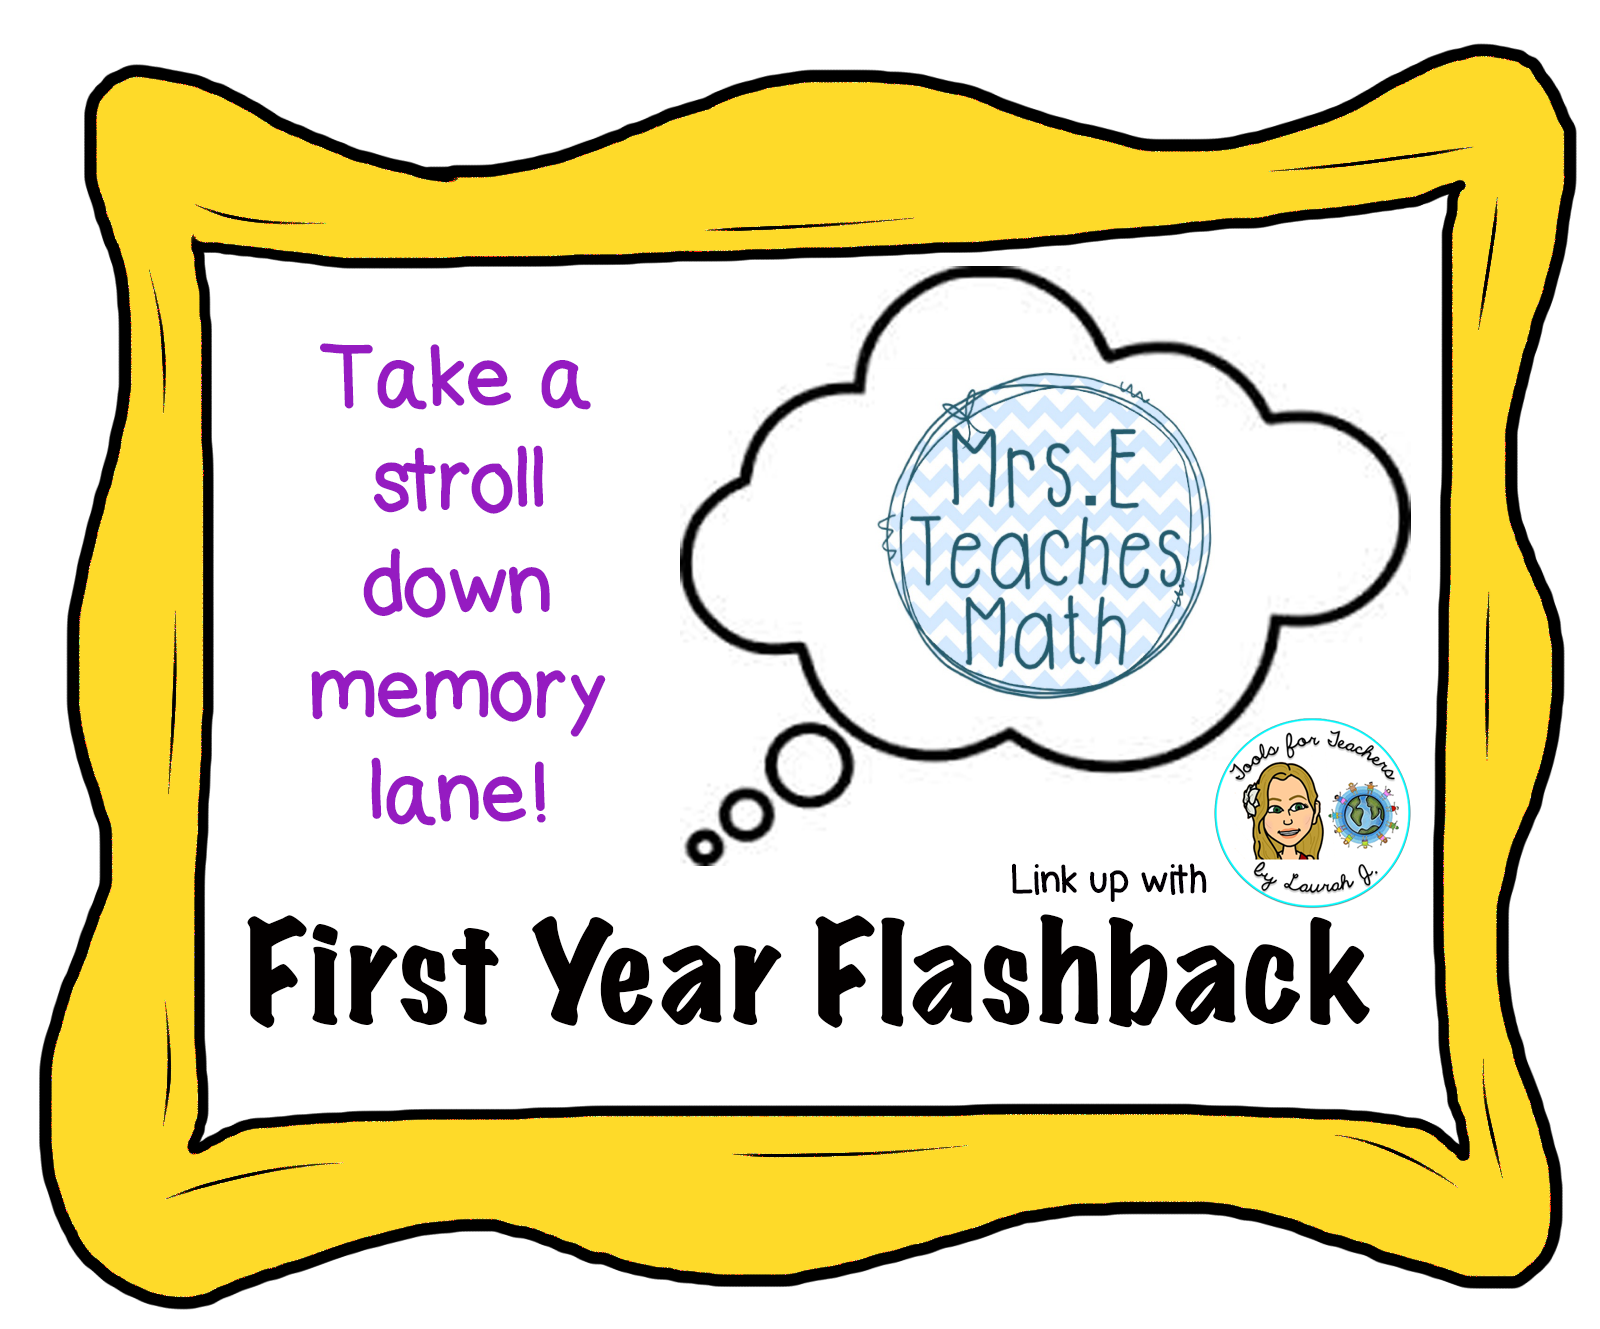 Mrs. E Teaches Math: First Year Flashback - reminisce about your first year teaching  |  mrseteachesmath.blogspot.com